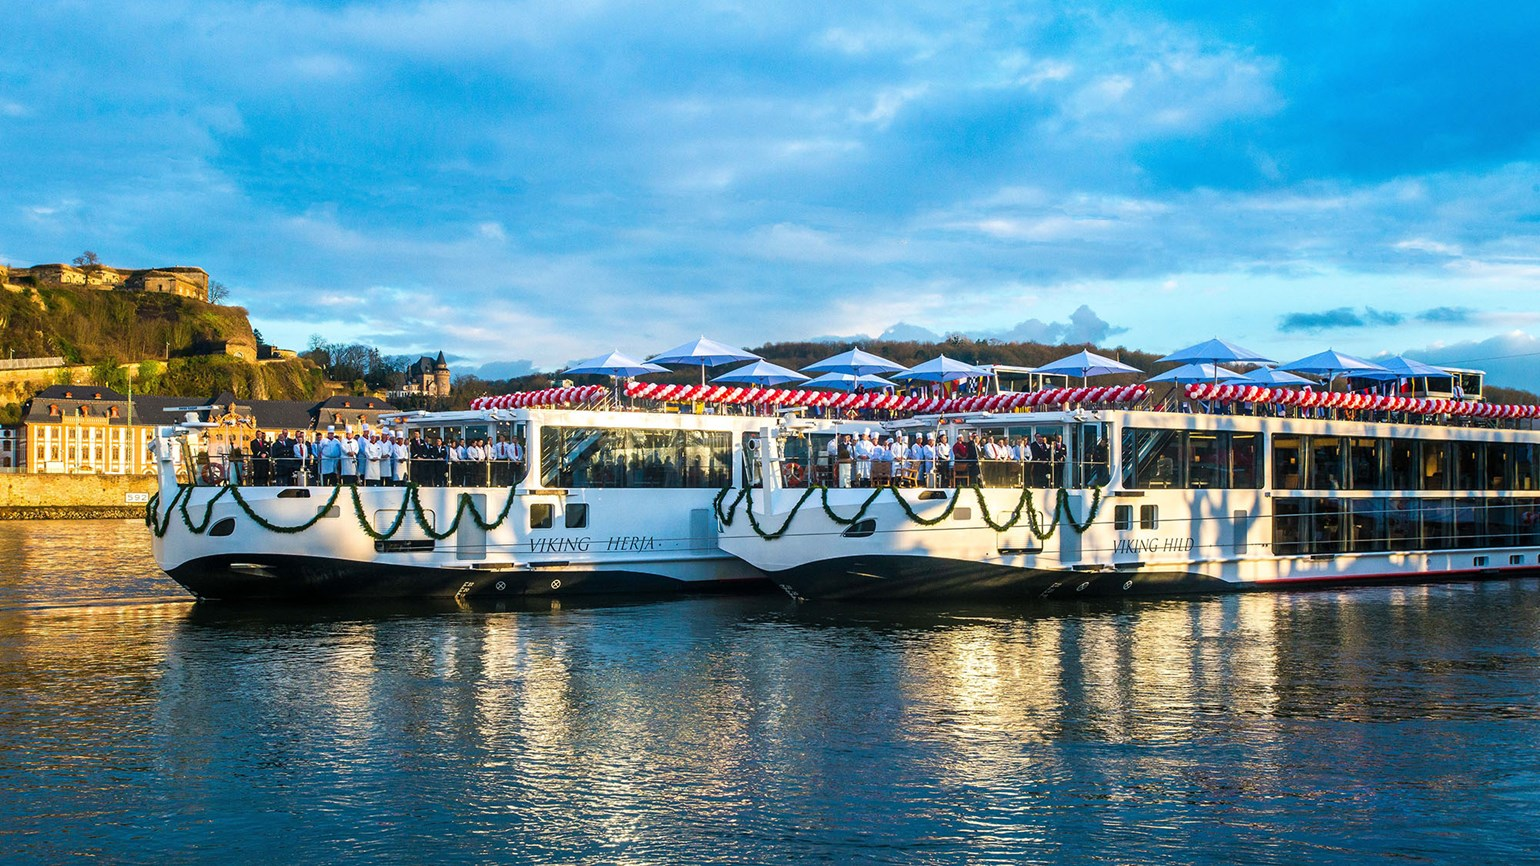 Viking River Cruises plots another major expansion